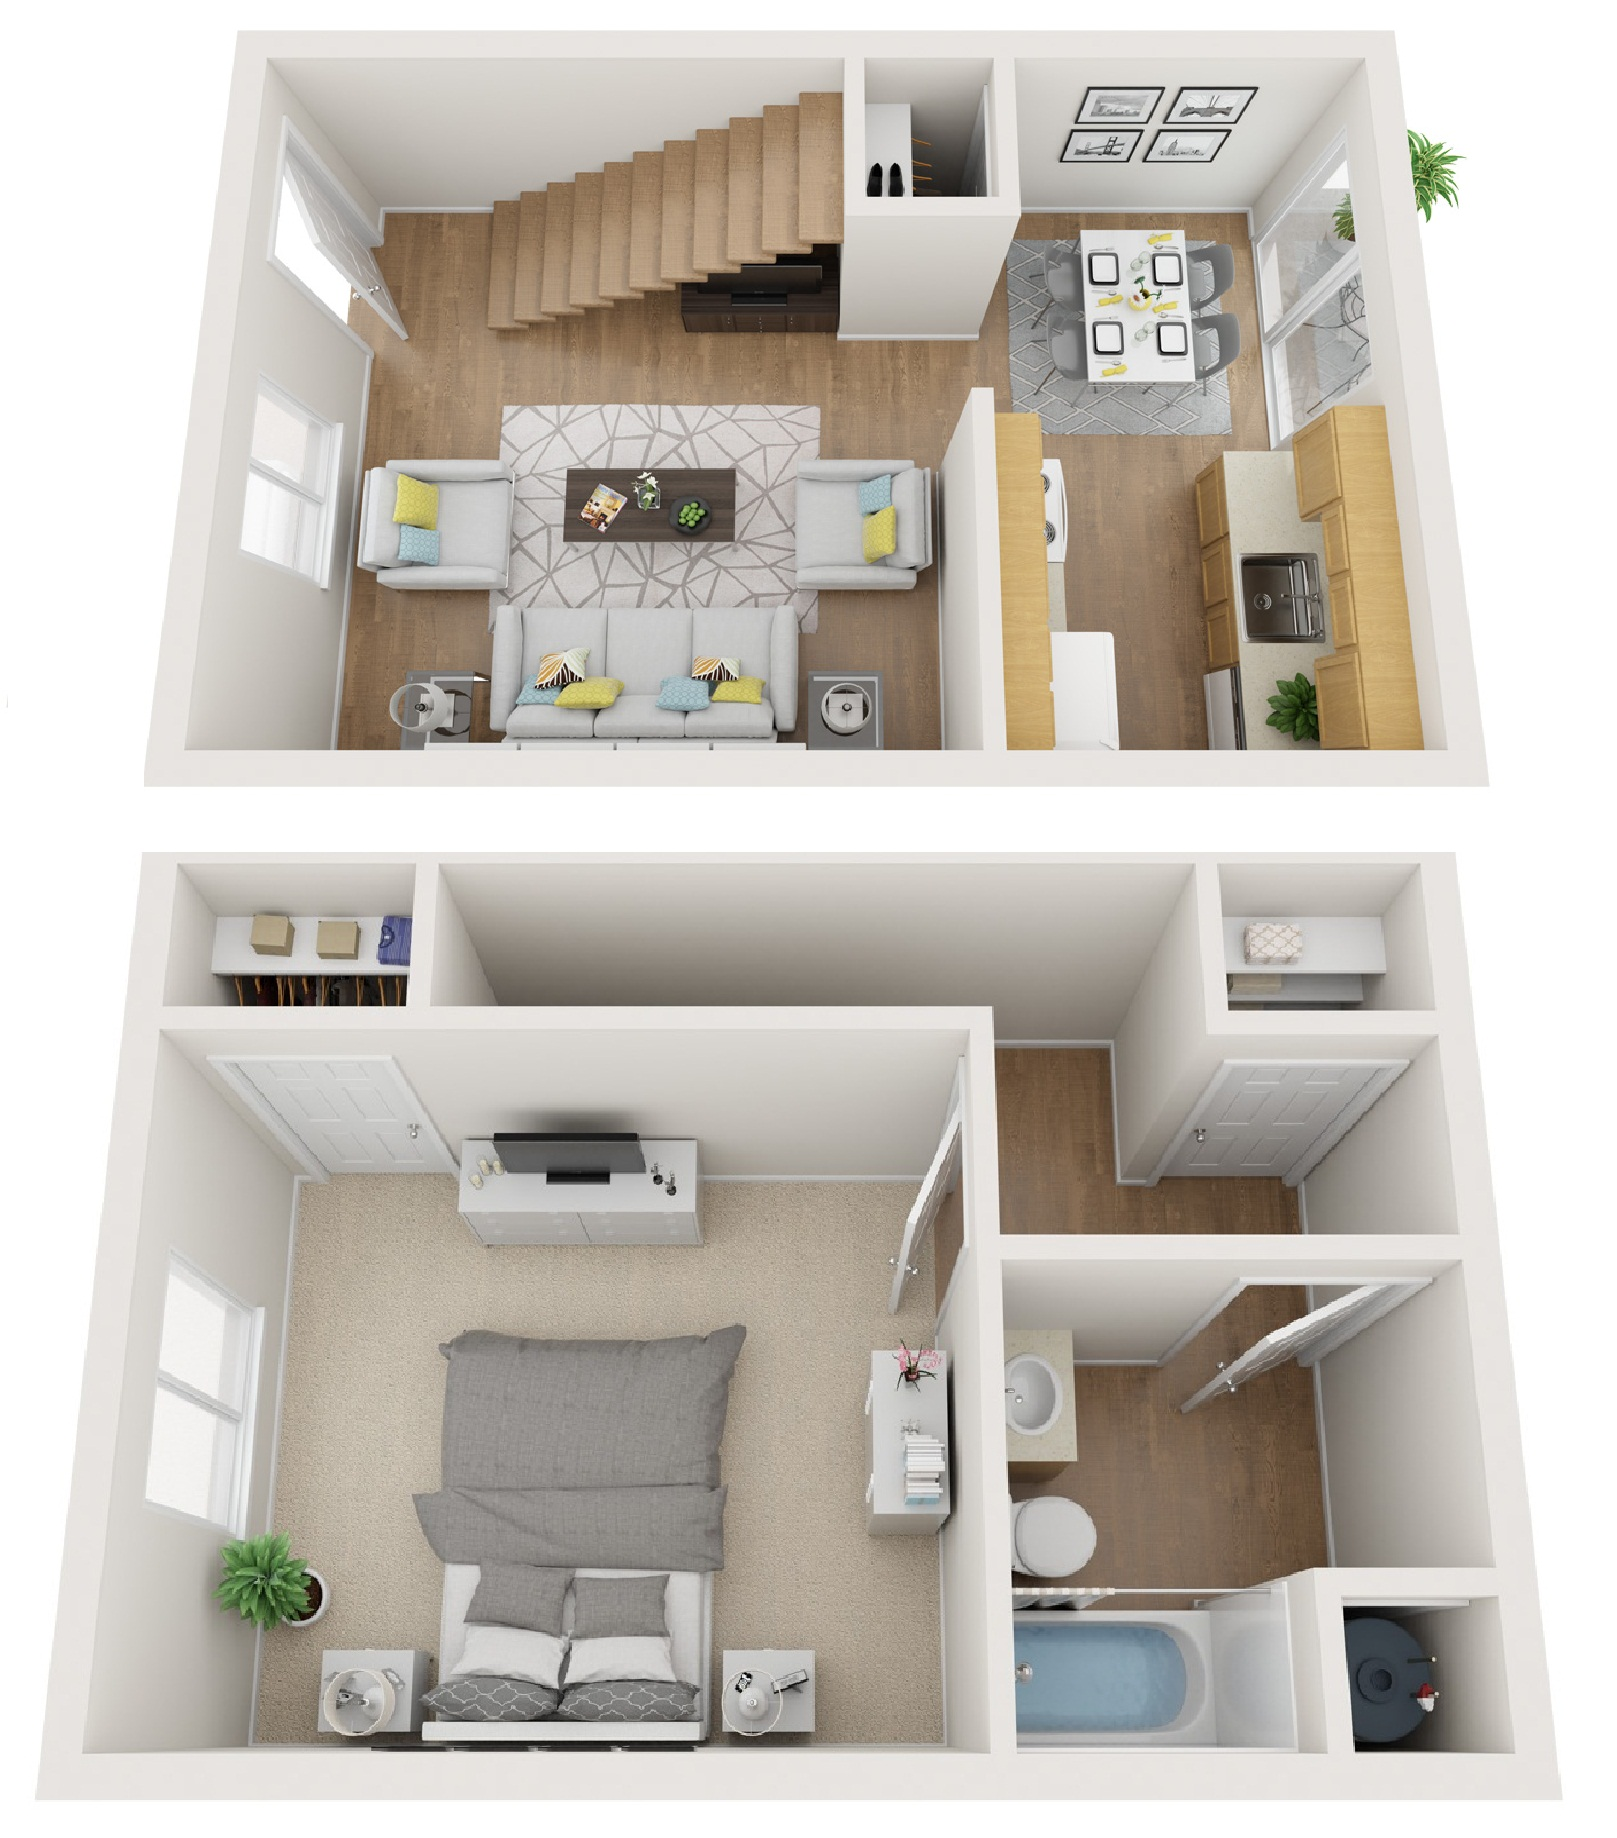 North Star Apartments Homes - Floorplan - 1 BR